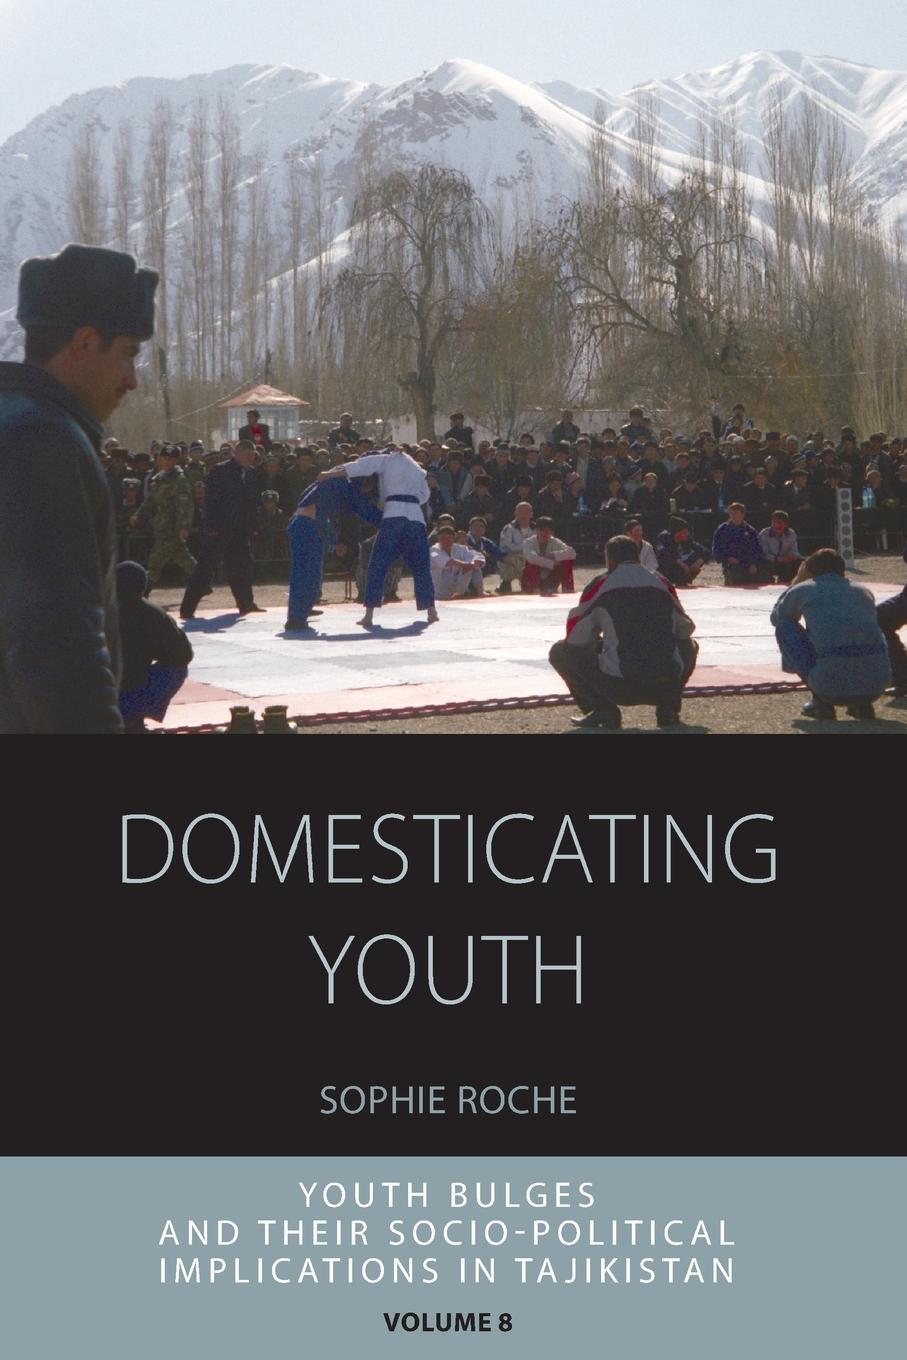 Sophie Roche Domesticating Youth. Youth Bulges and Their Socio-Political Implications in Tajikistan